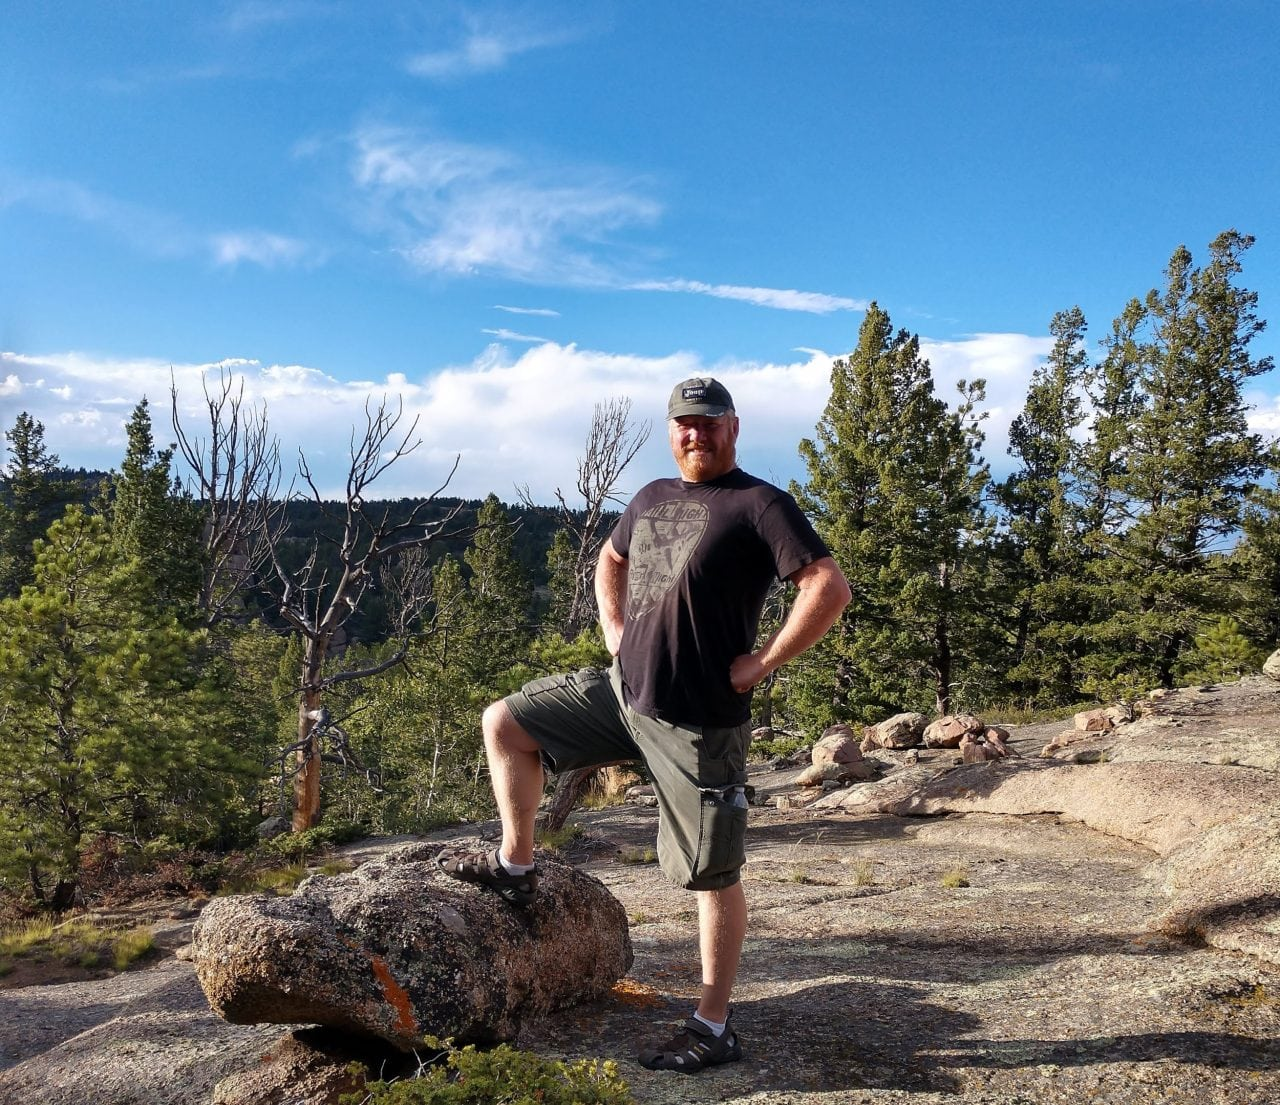 Late-Summer and Fall Camping in Vedauwoo Is a Fun Family Adventure!